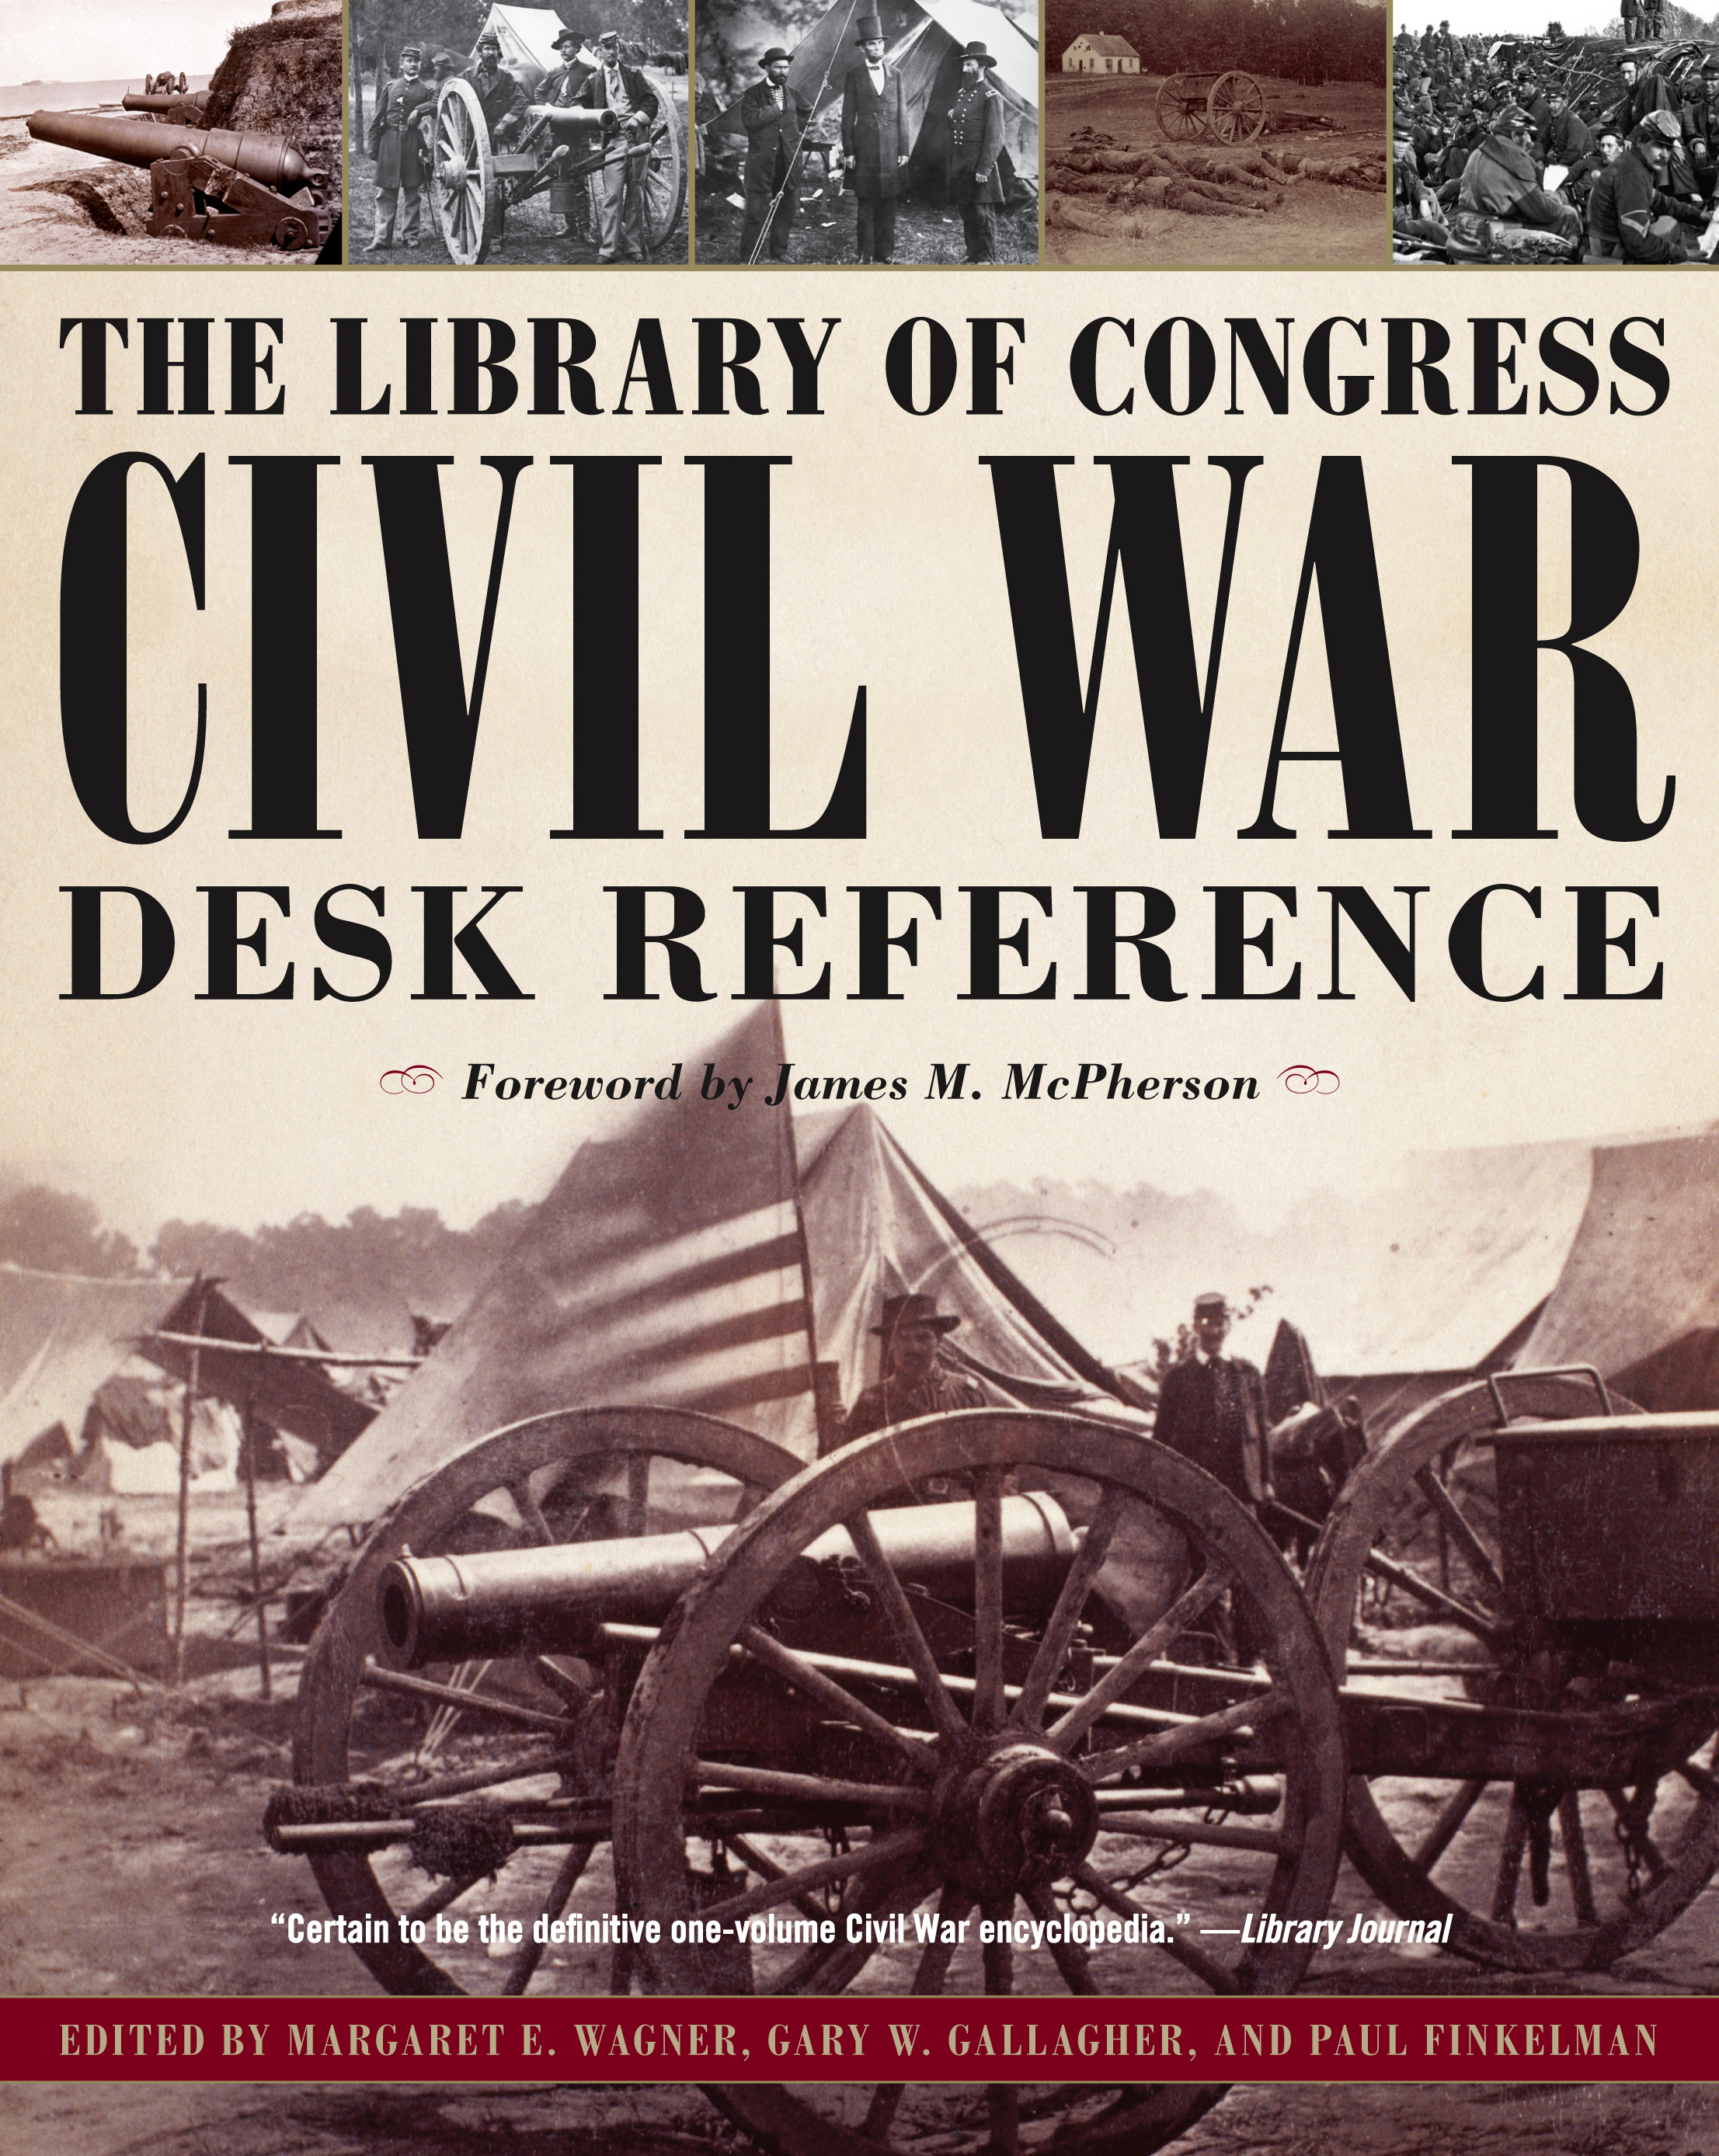 The library of congress civil war desk reference book by james m cvr9781439148846 9781439148846 hr fandeluxe Image collections